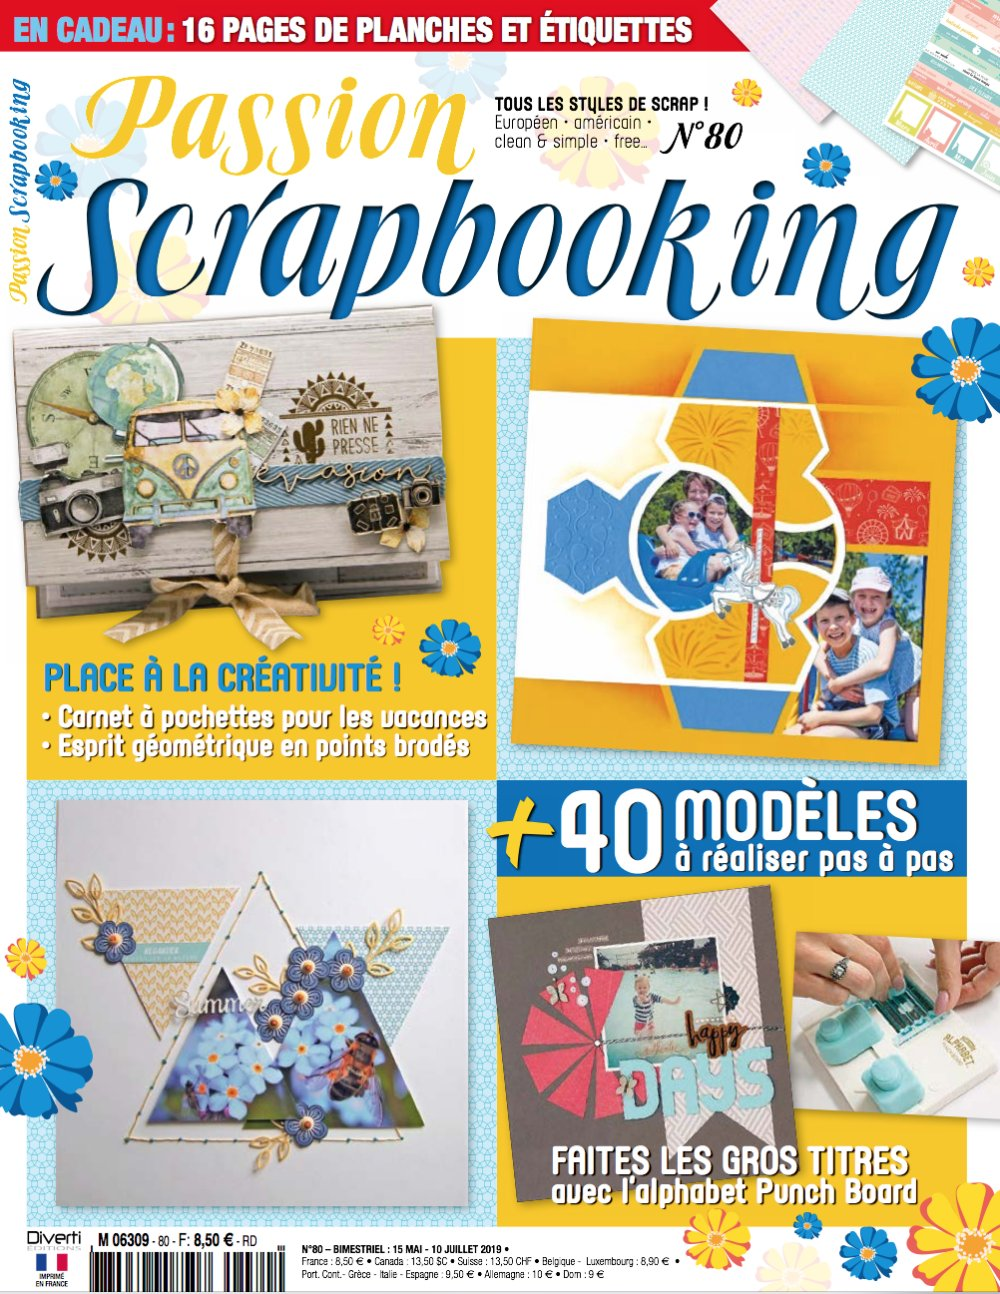 Passion Scrapbooking n°80 Couver10